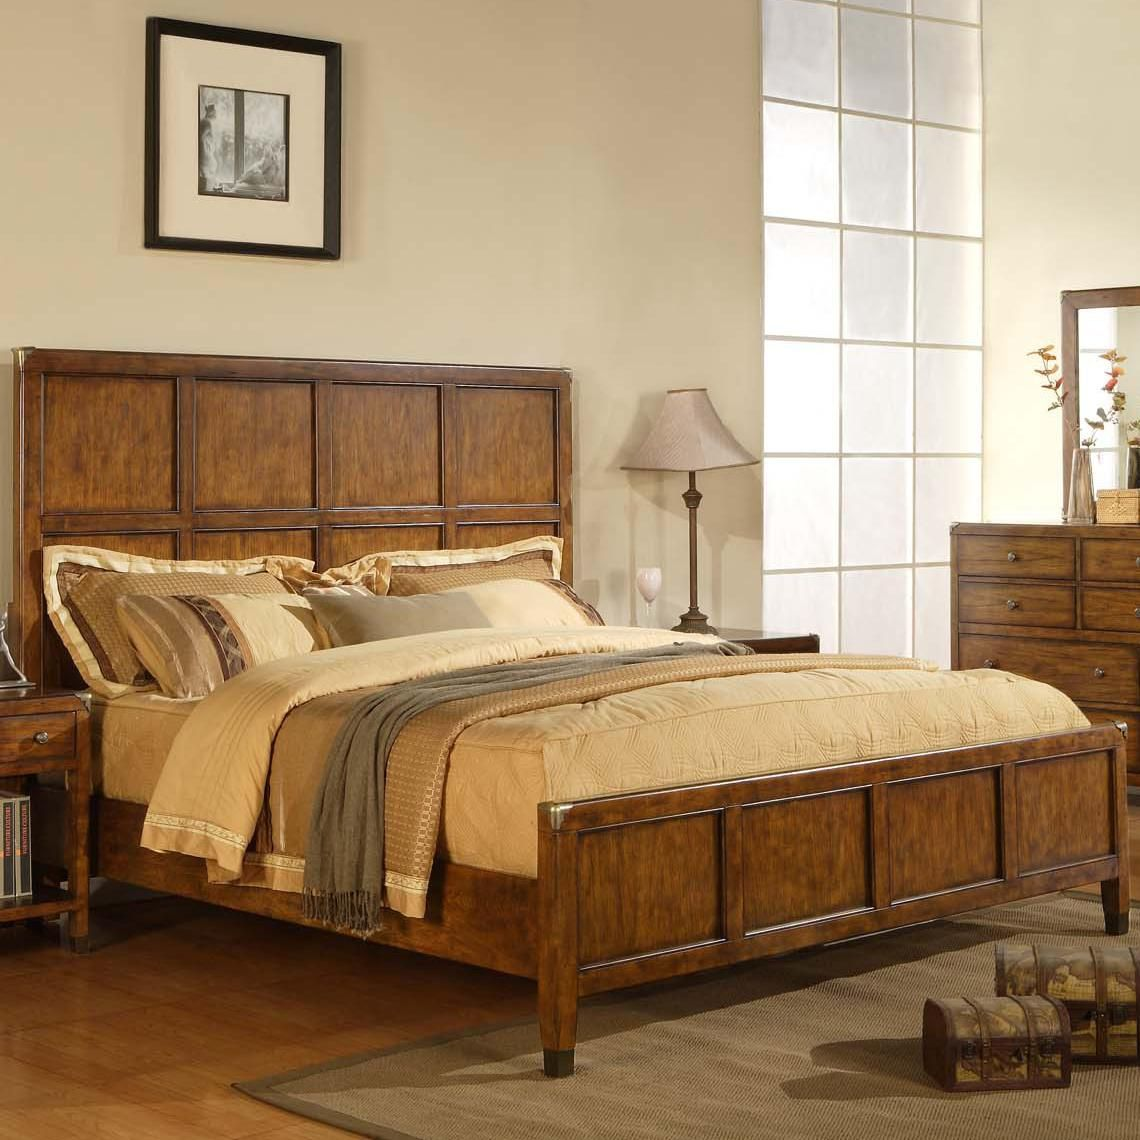 Storehouse Queen Panel Bed by Wynwood